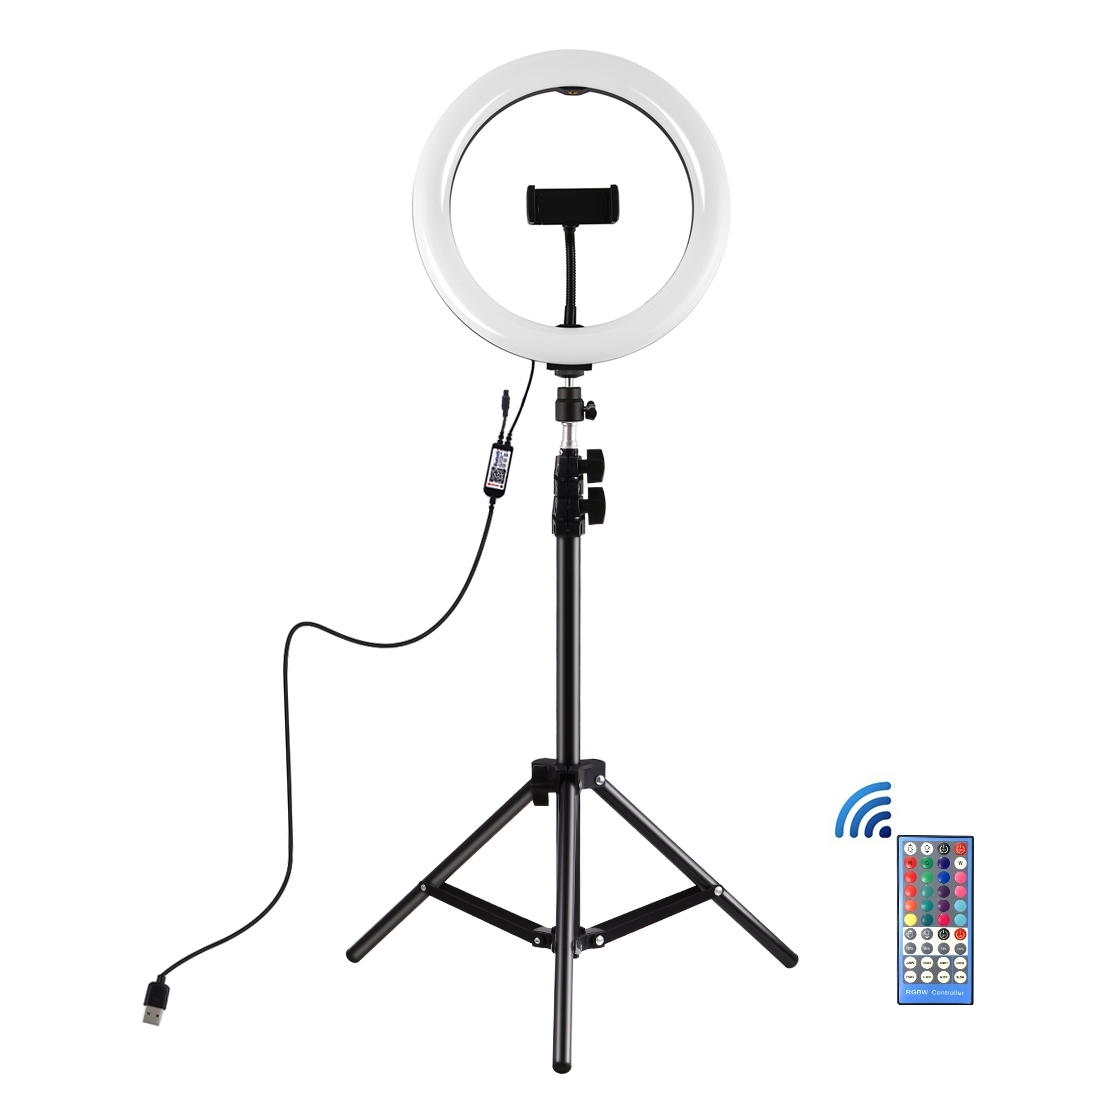 10.2 inch RGBW LED Ring Vlogging Video Light Kits with Remote Control /& Cold Shoe Tripod Ball Head/for YouTube Video vlogging Live Broadcast Dual Phone Bracket PULUZ 140cm Round Base Desktop Mount